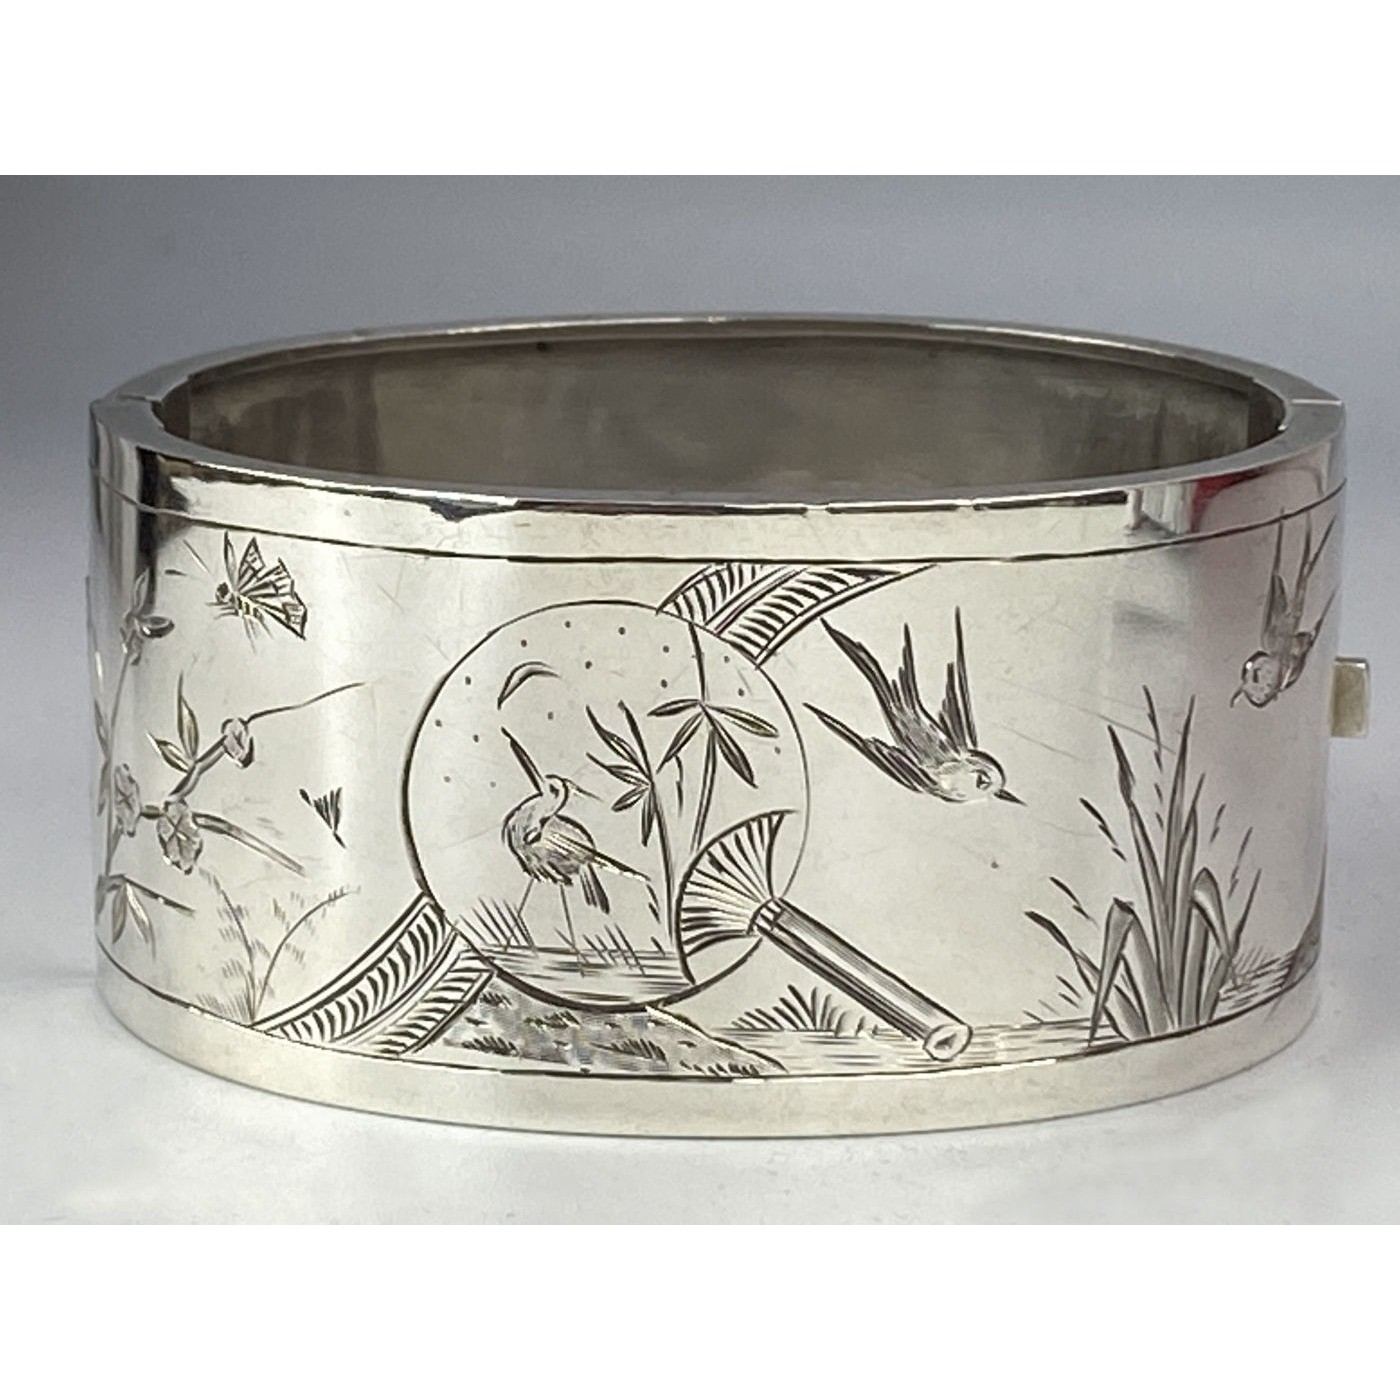 Swallows and AWESOME Spy Glass Engraved Antique English Silver Bangle